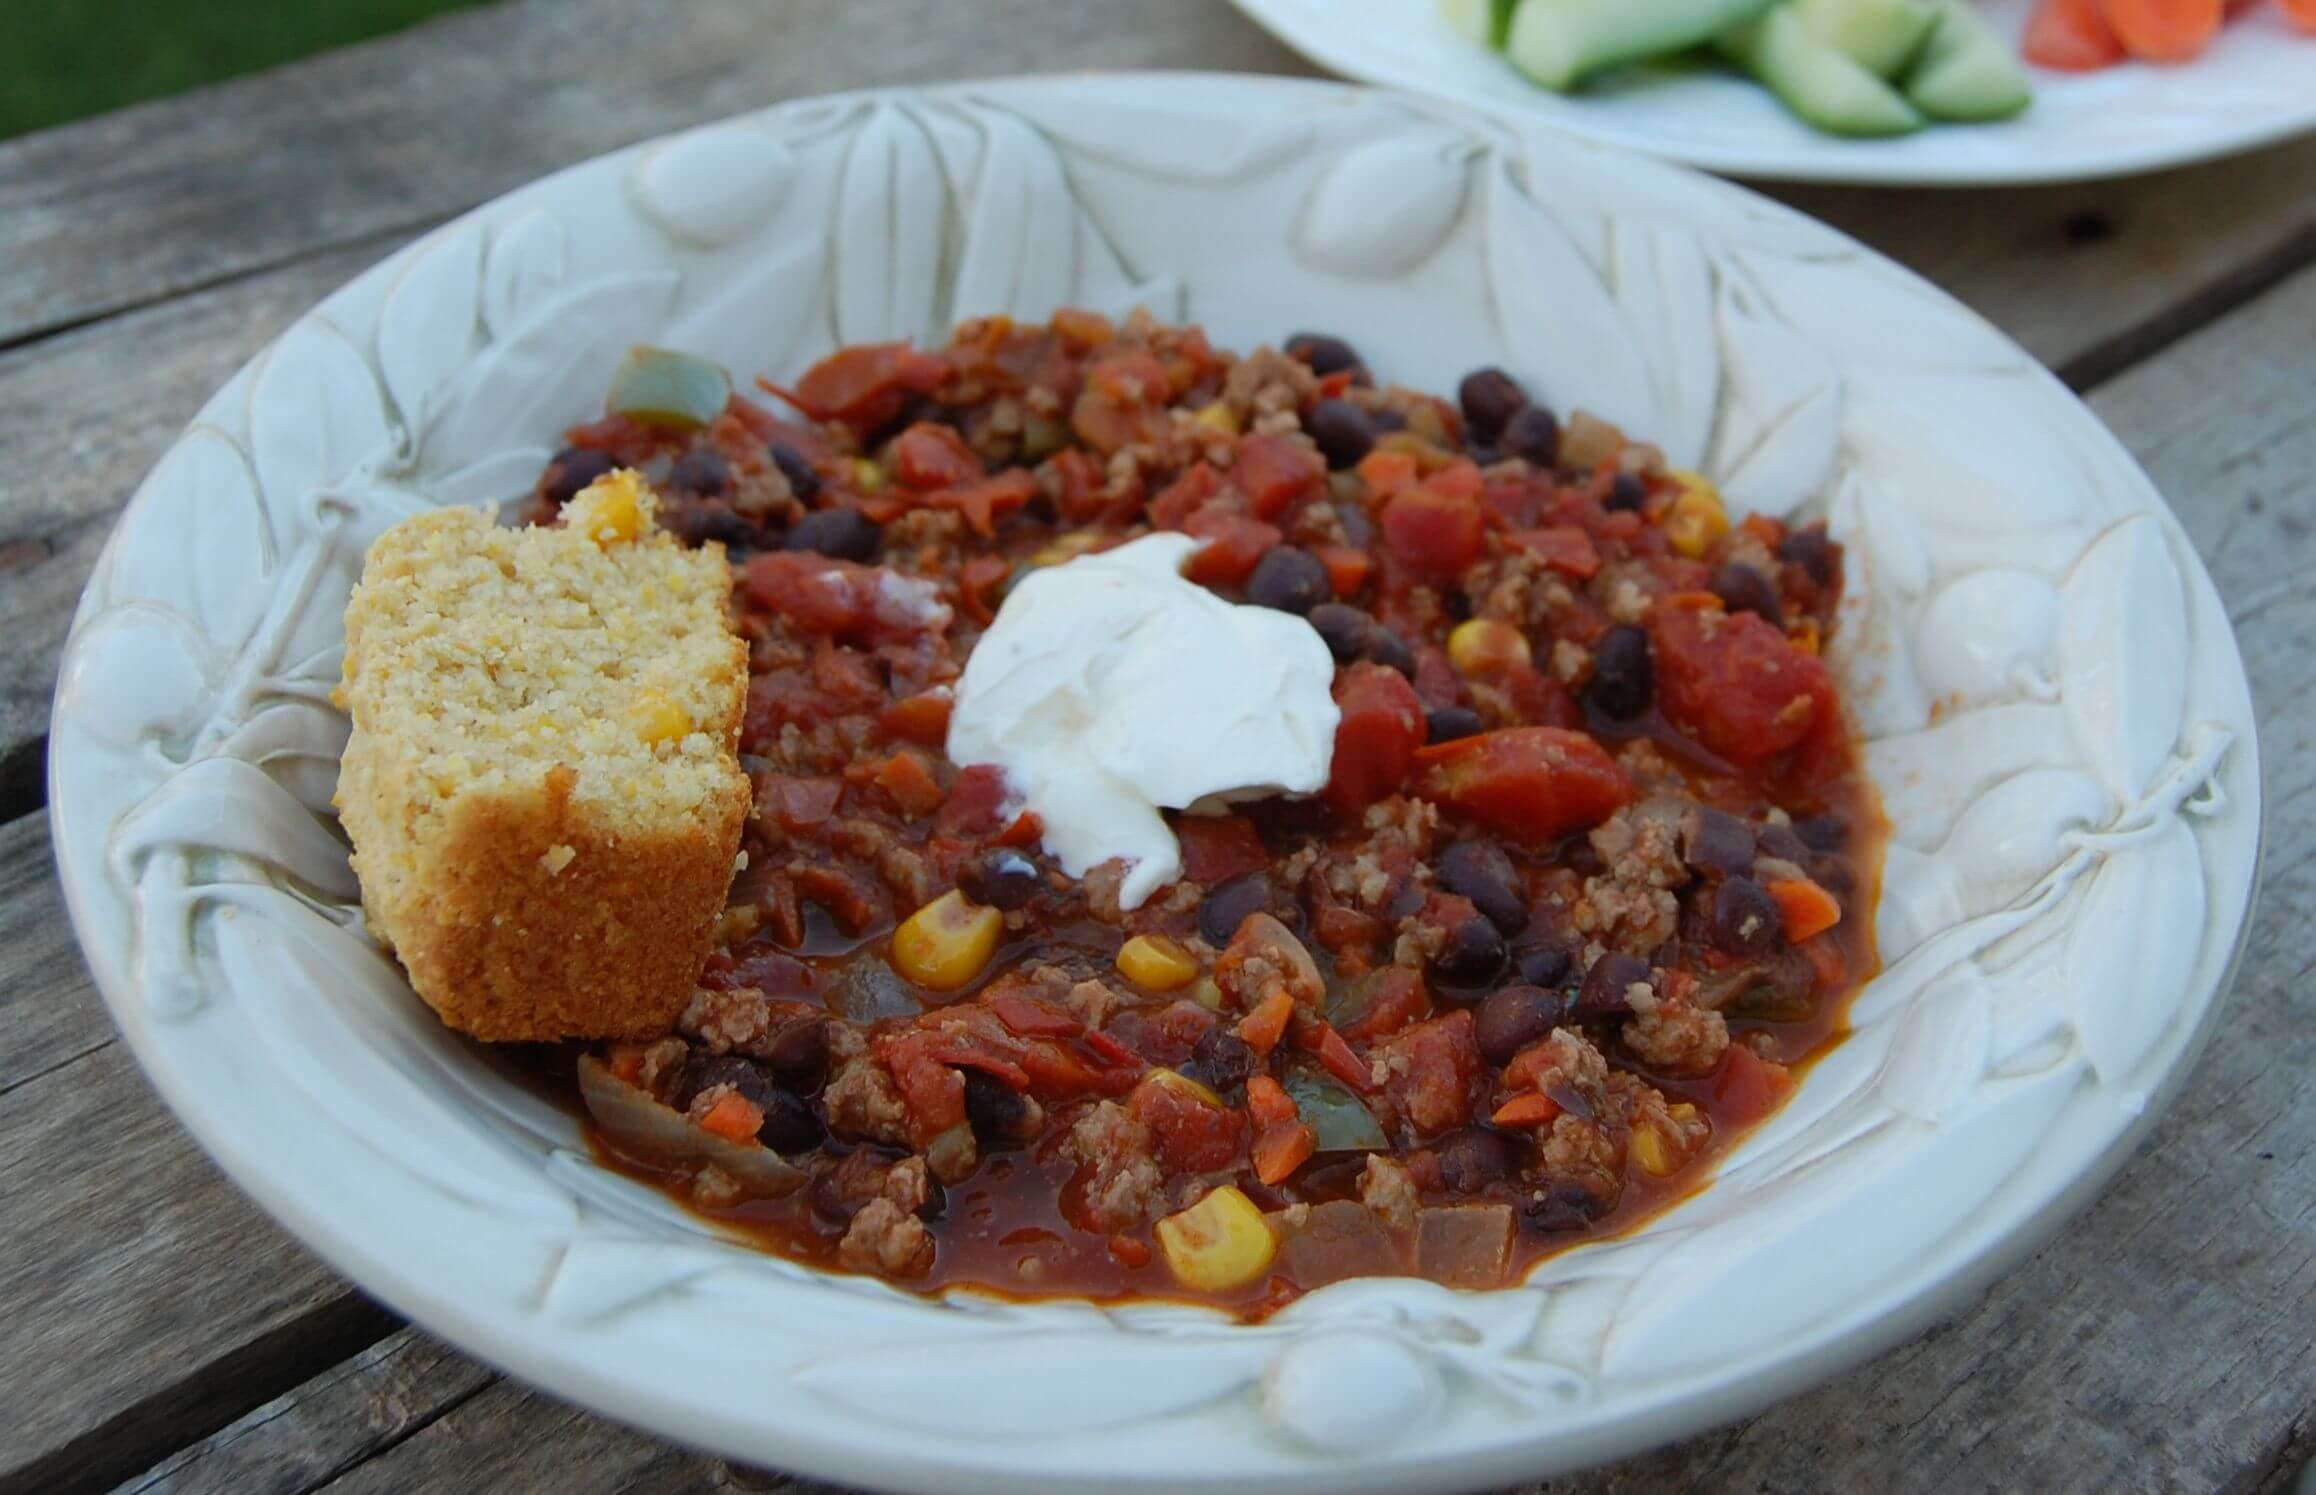 Homemade chili in a bowl with a side of cornbread.